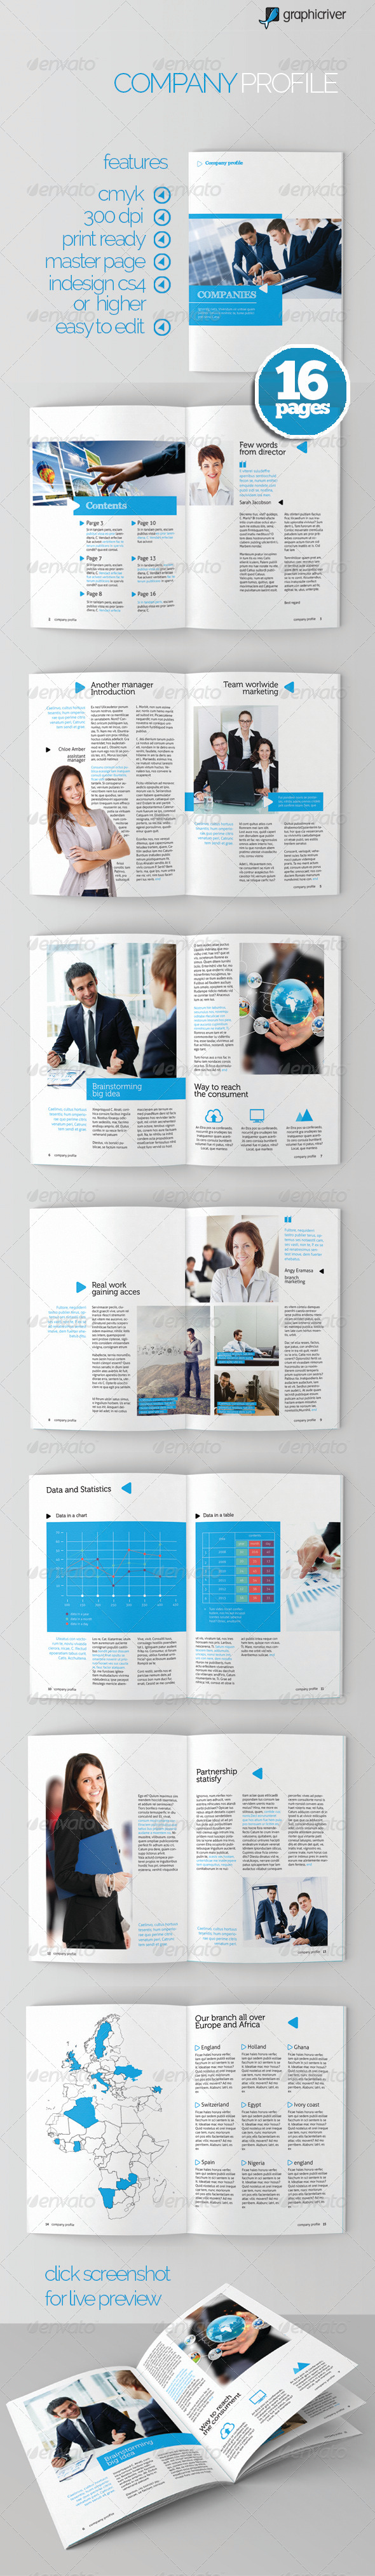 GraphicRiver Clean Company Profile 6221861